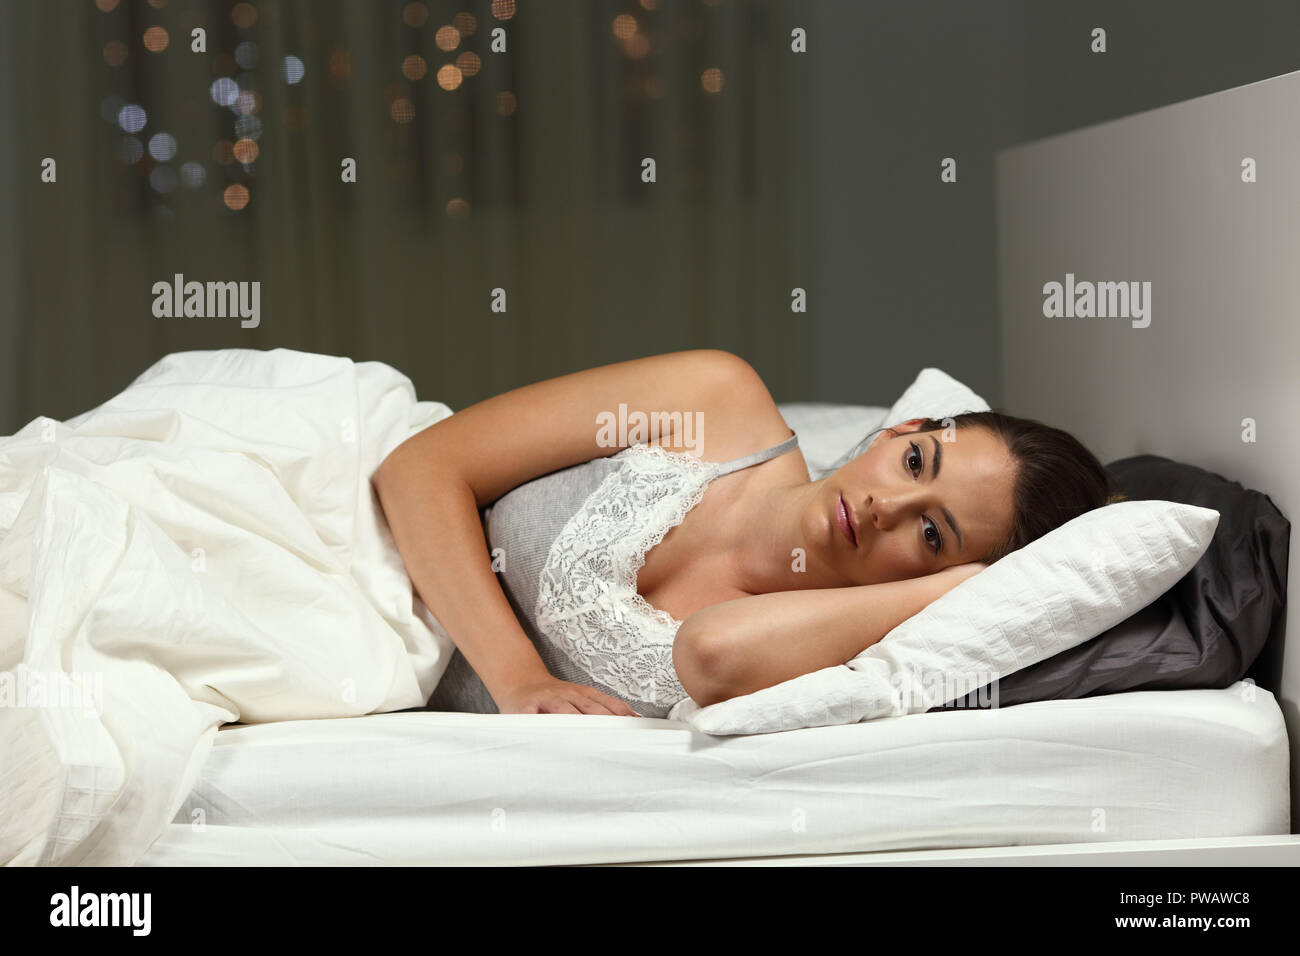 Insomniac woman can not sleep lying on the bed in the night at home - Stock Image